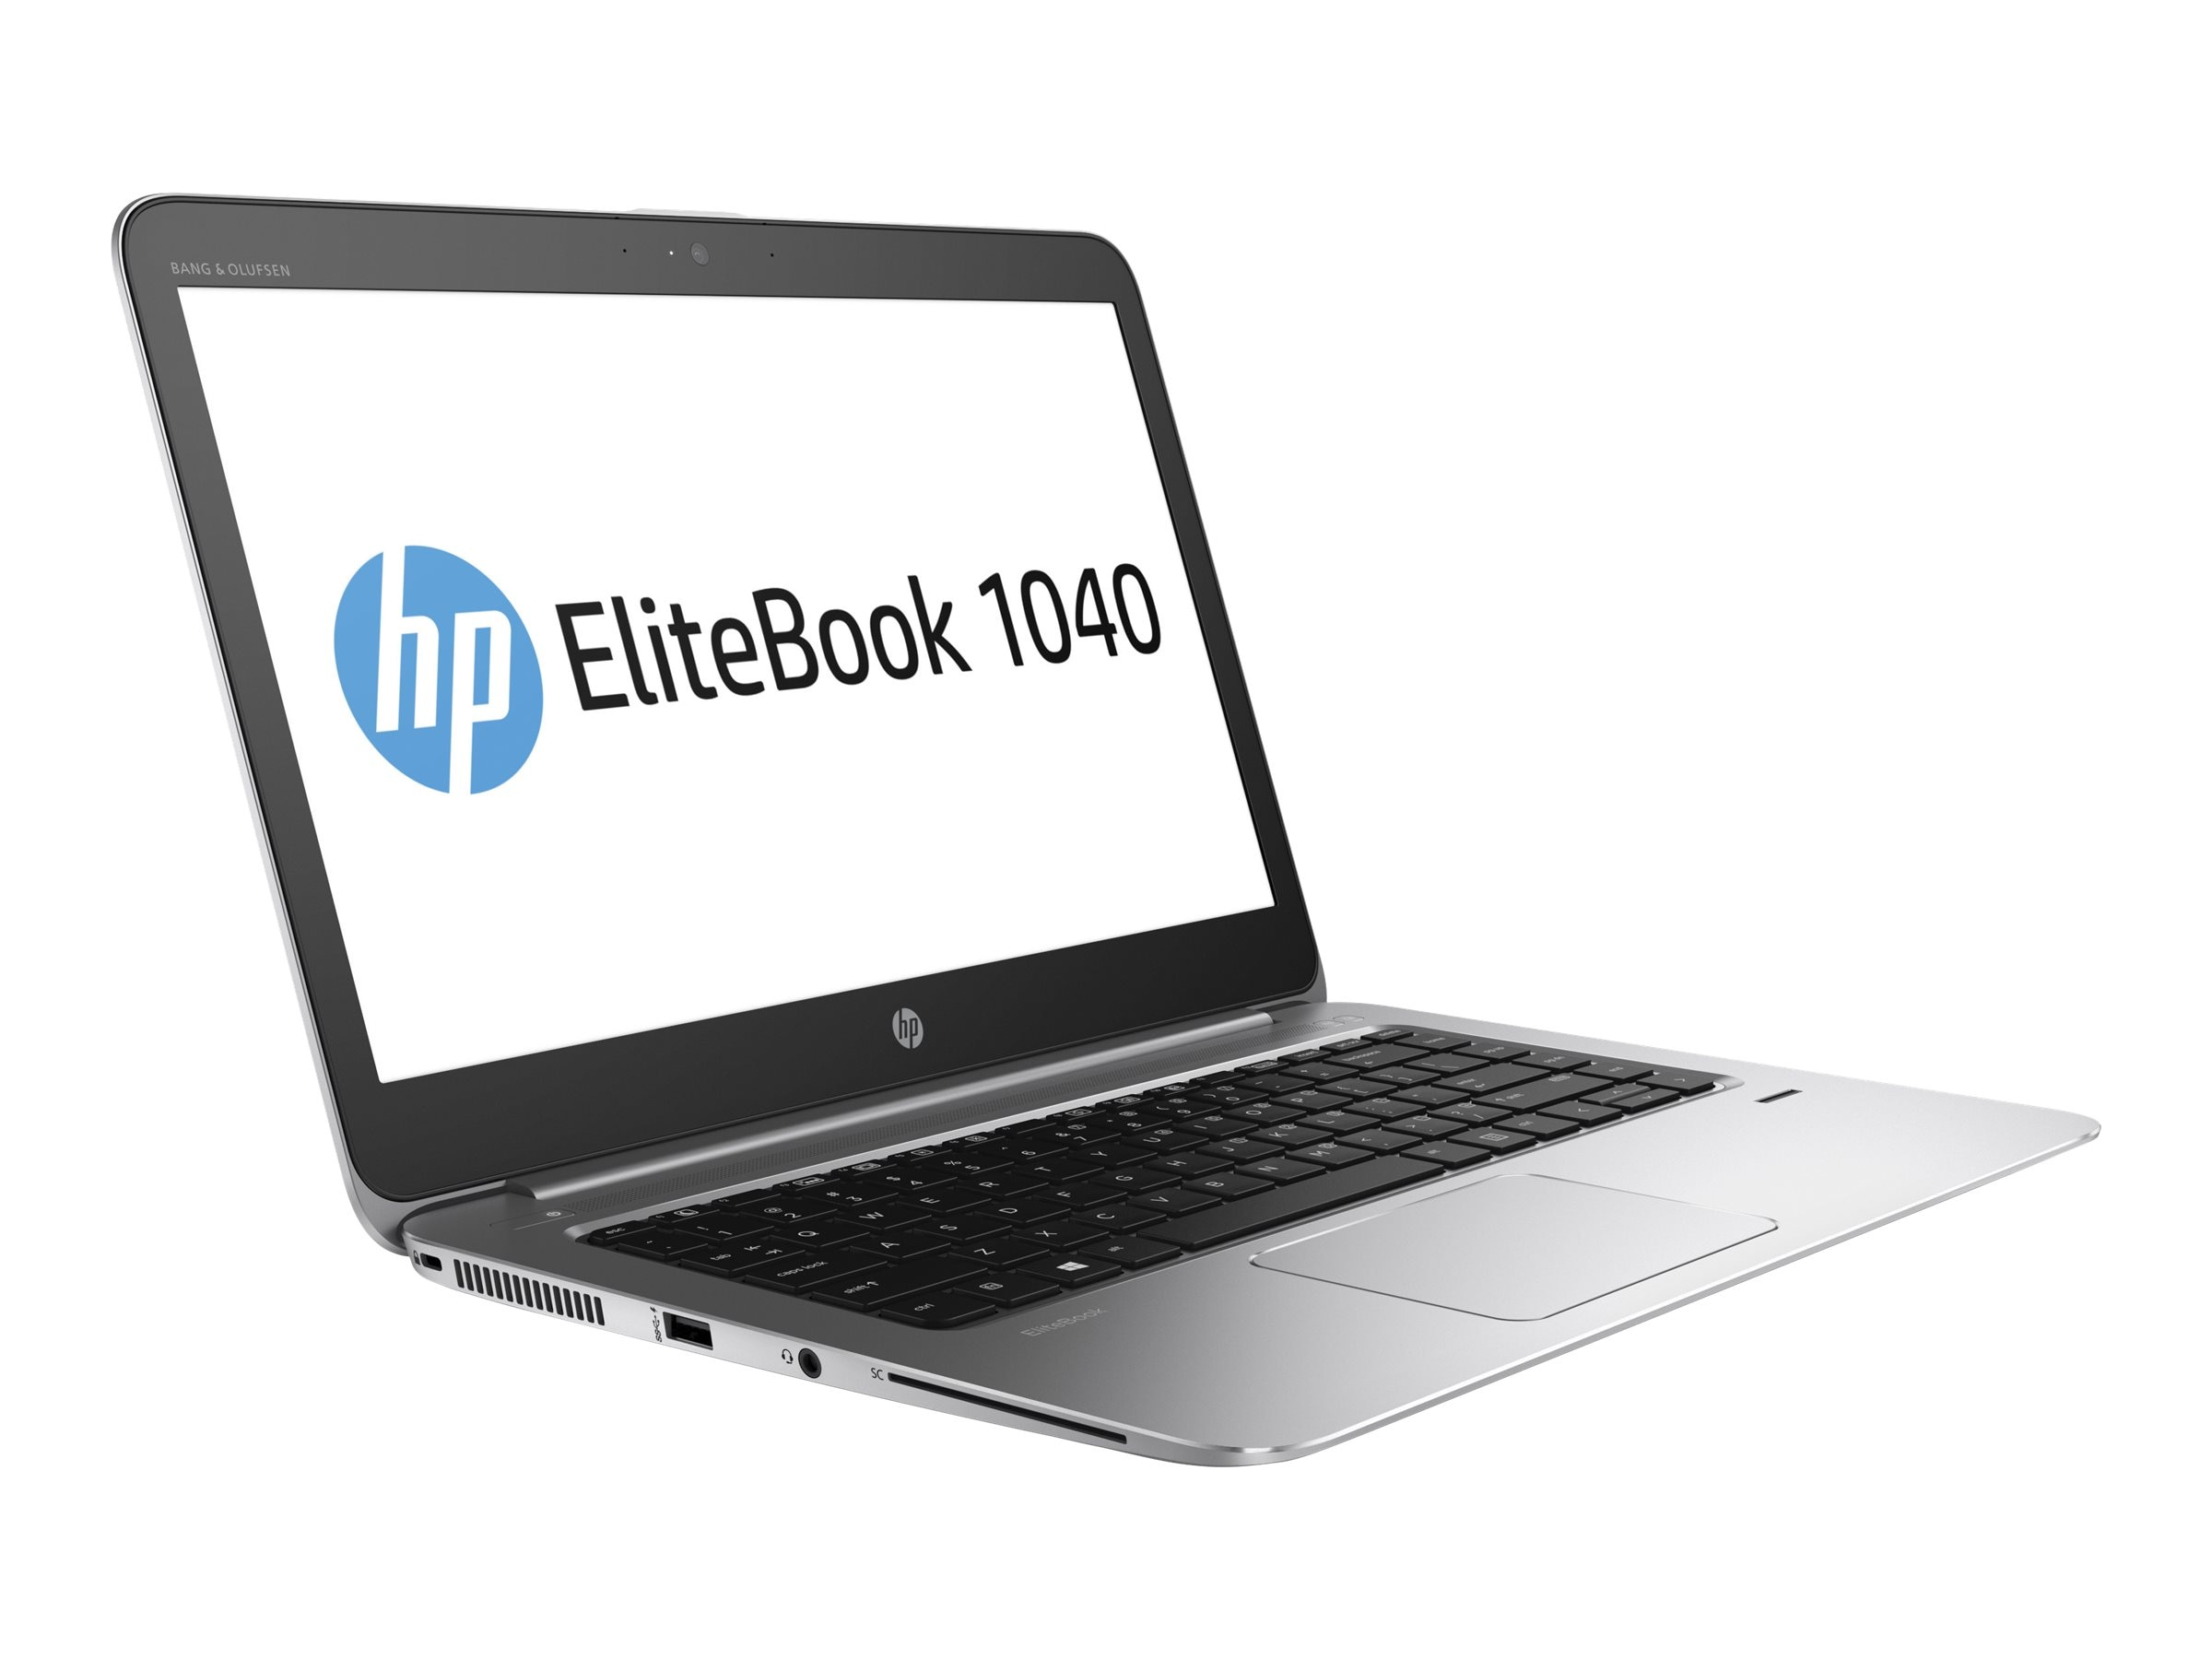 HP EliteBook 1040 G3 2.4GHz Core i5 14in display, X1C38AW#ABA